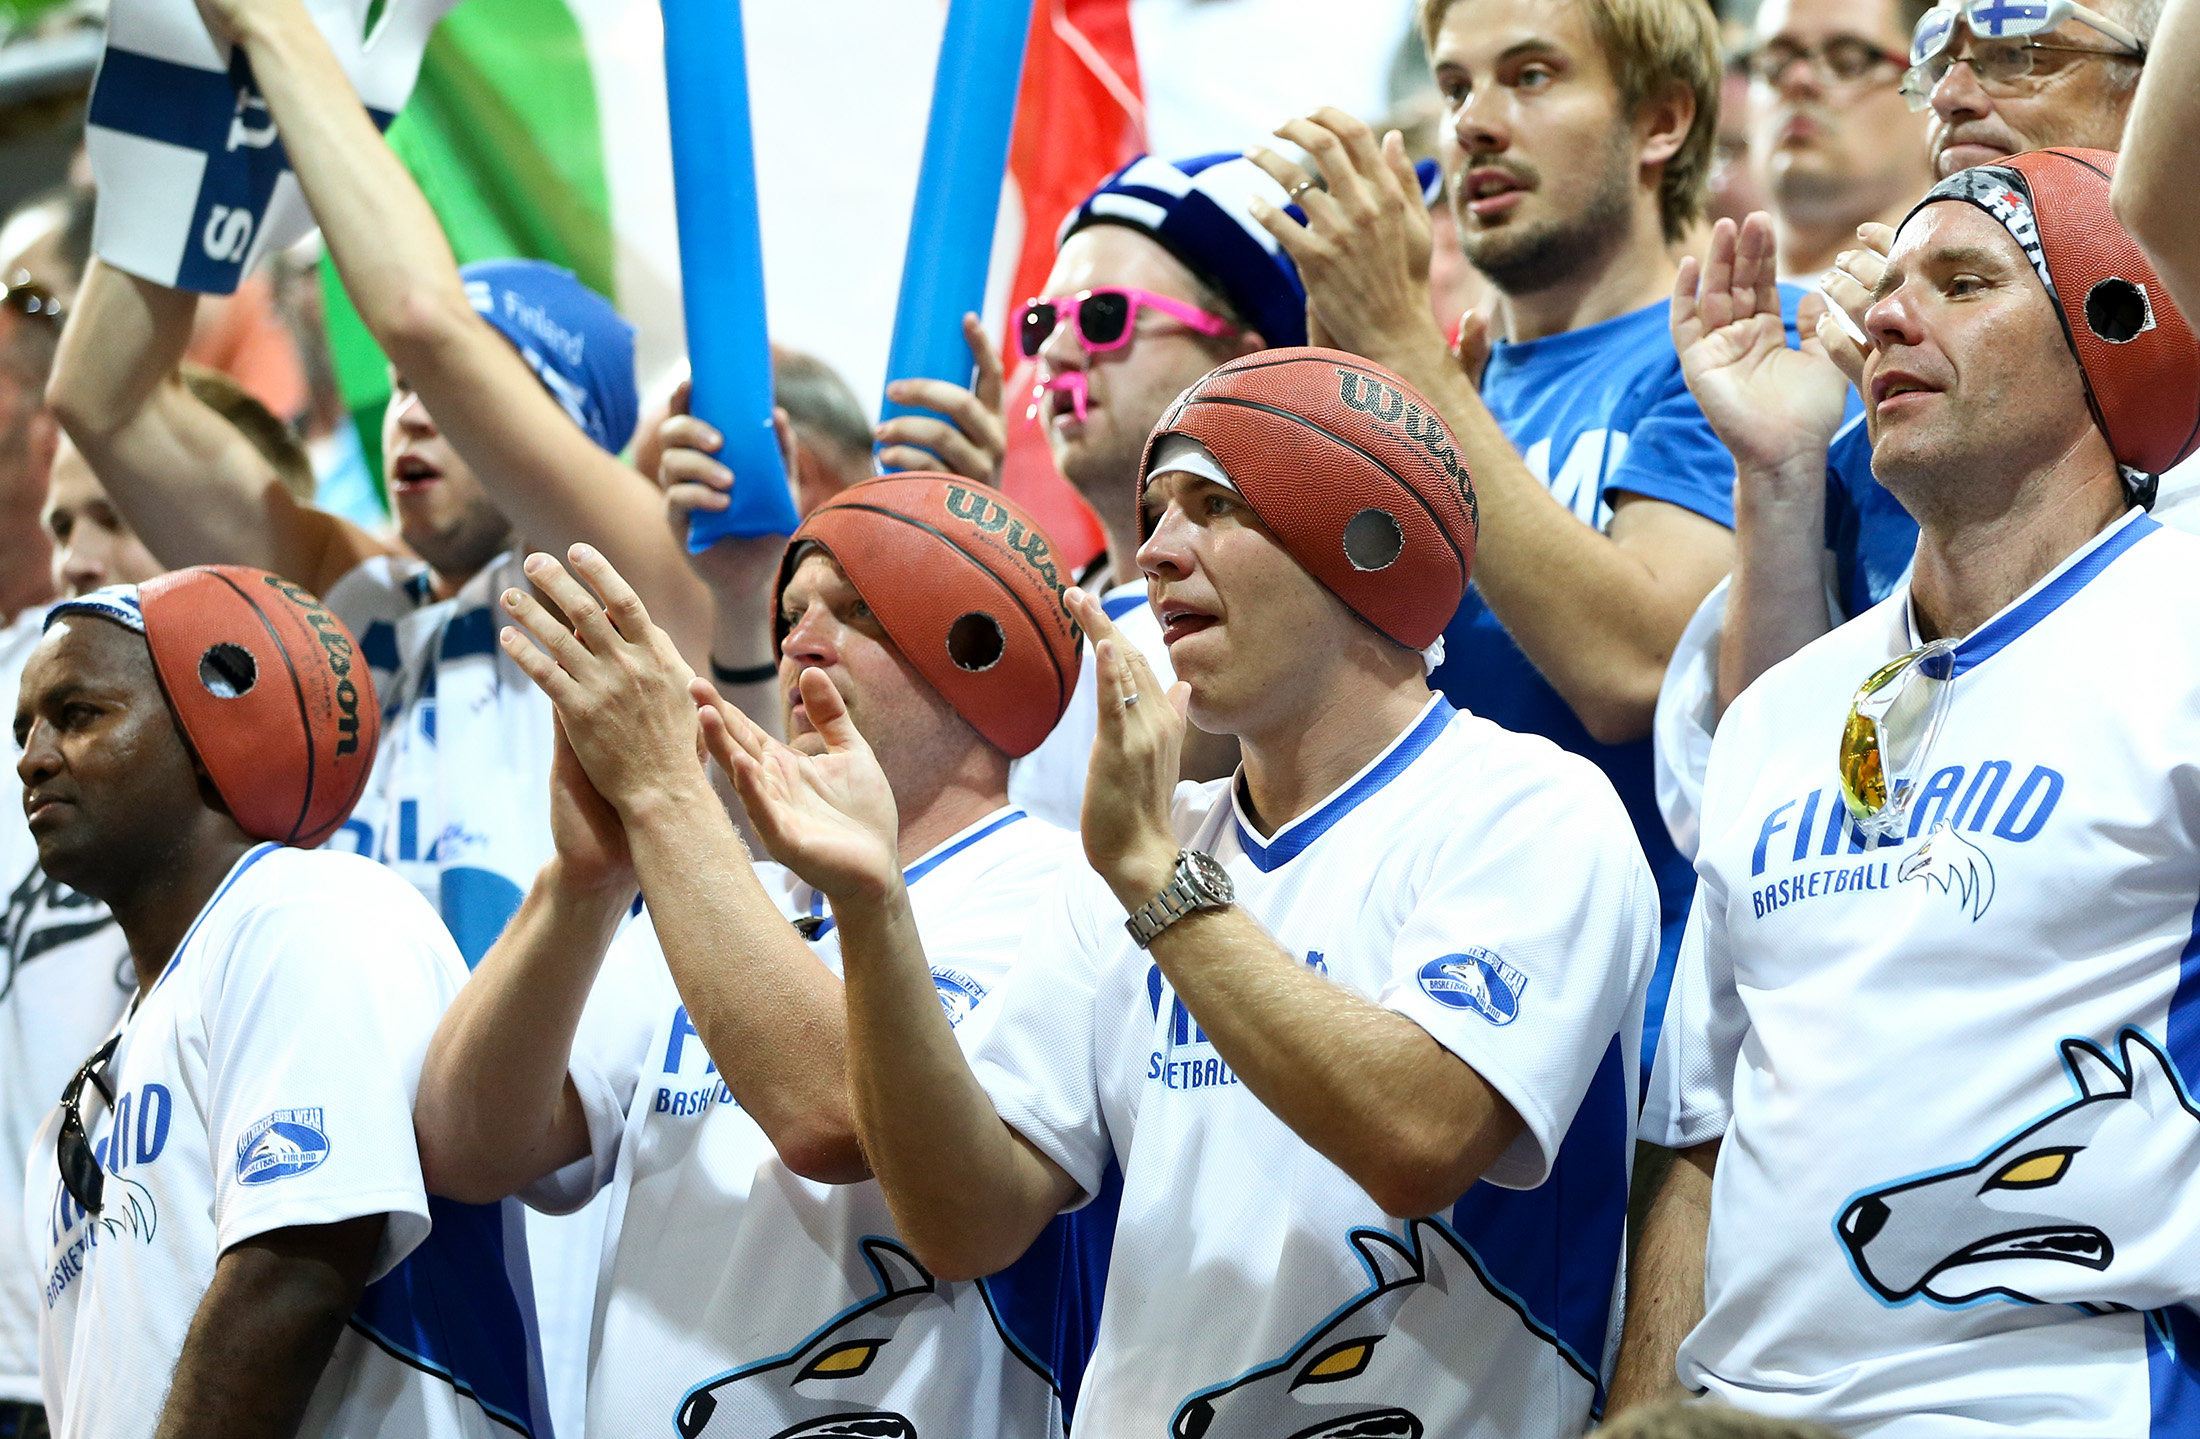 Susijengi fanit / ©Ville Vuorinen / NO UNPAID USE ALLOWED /